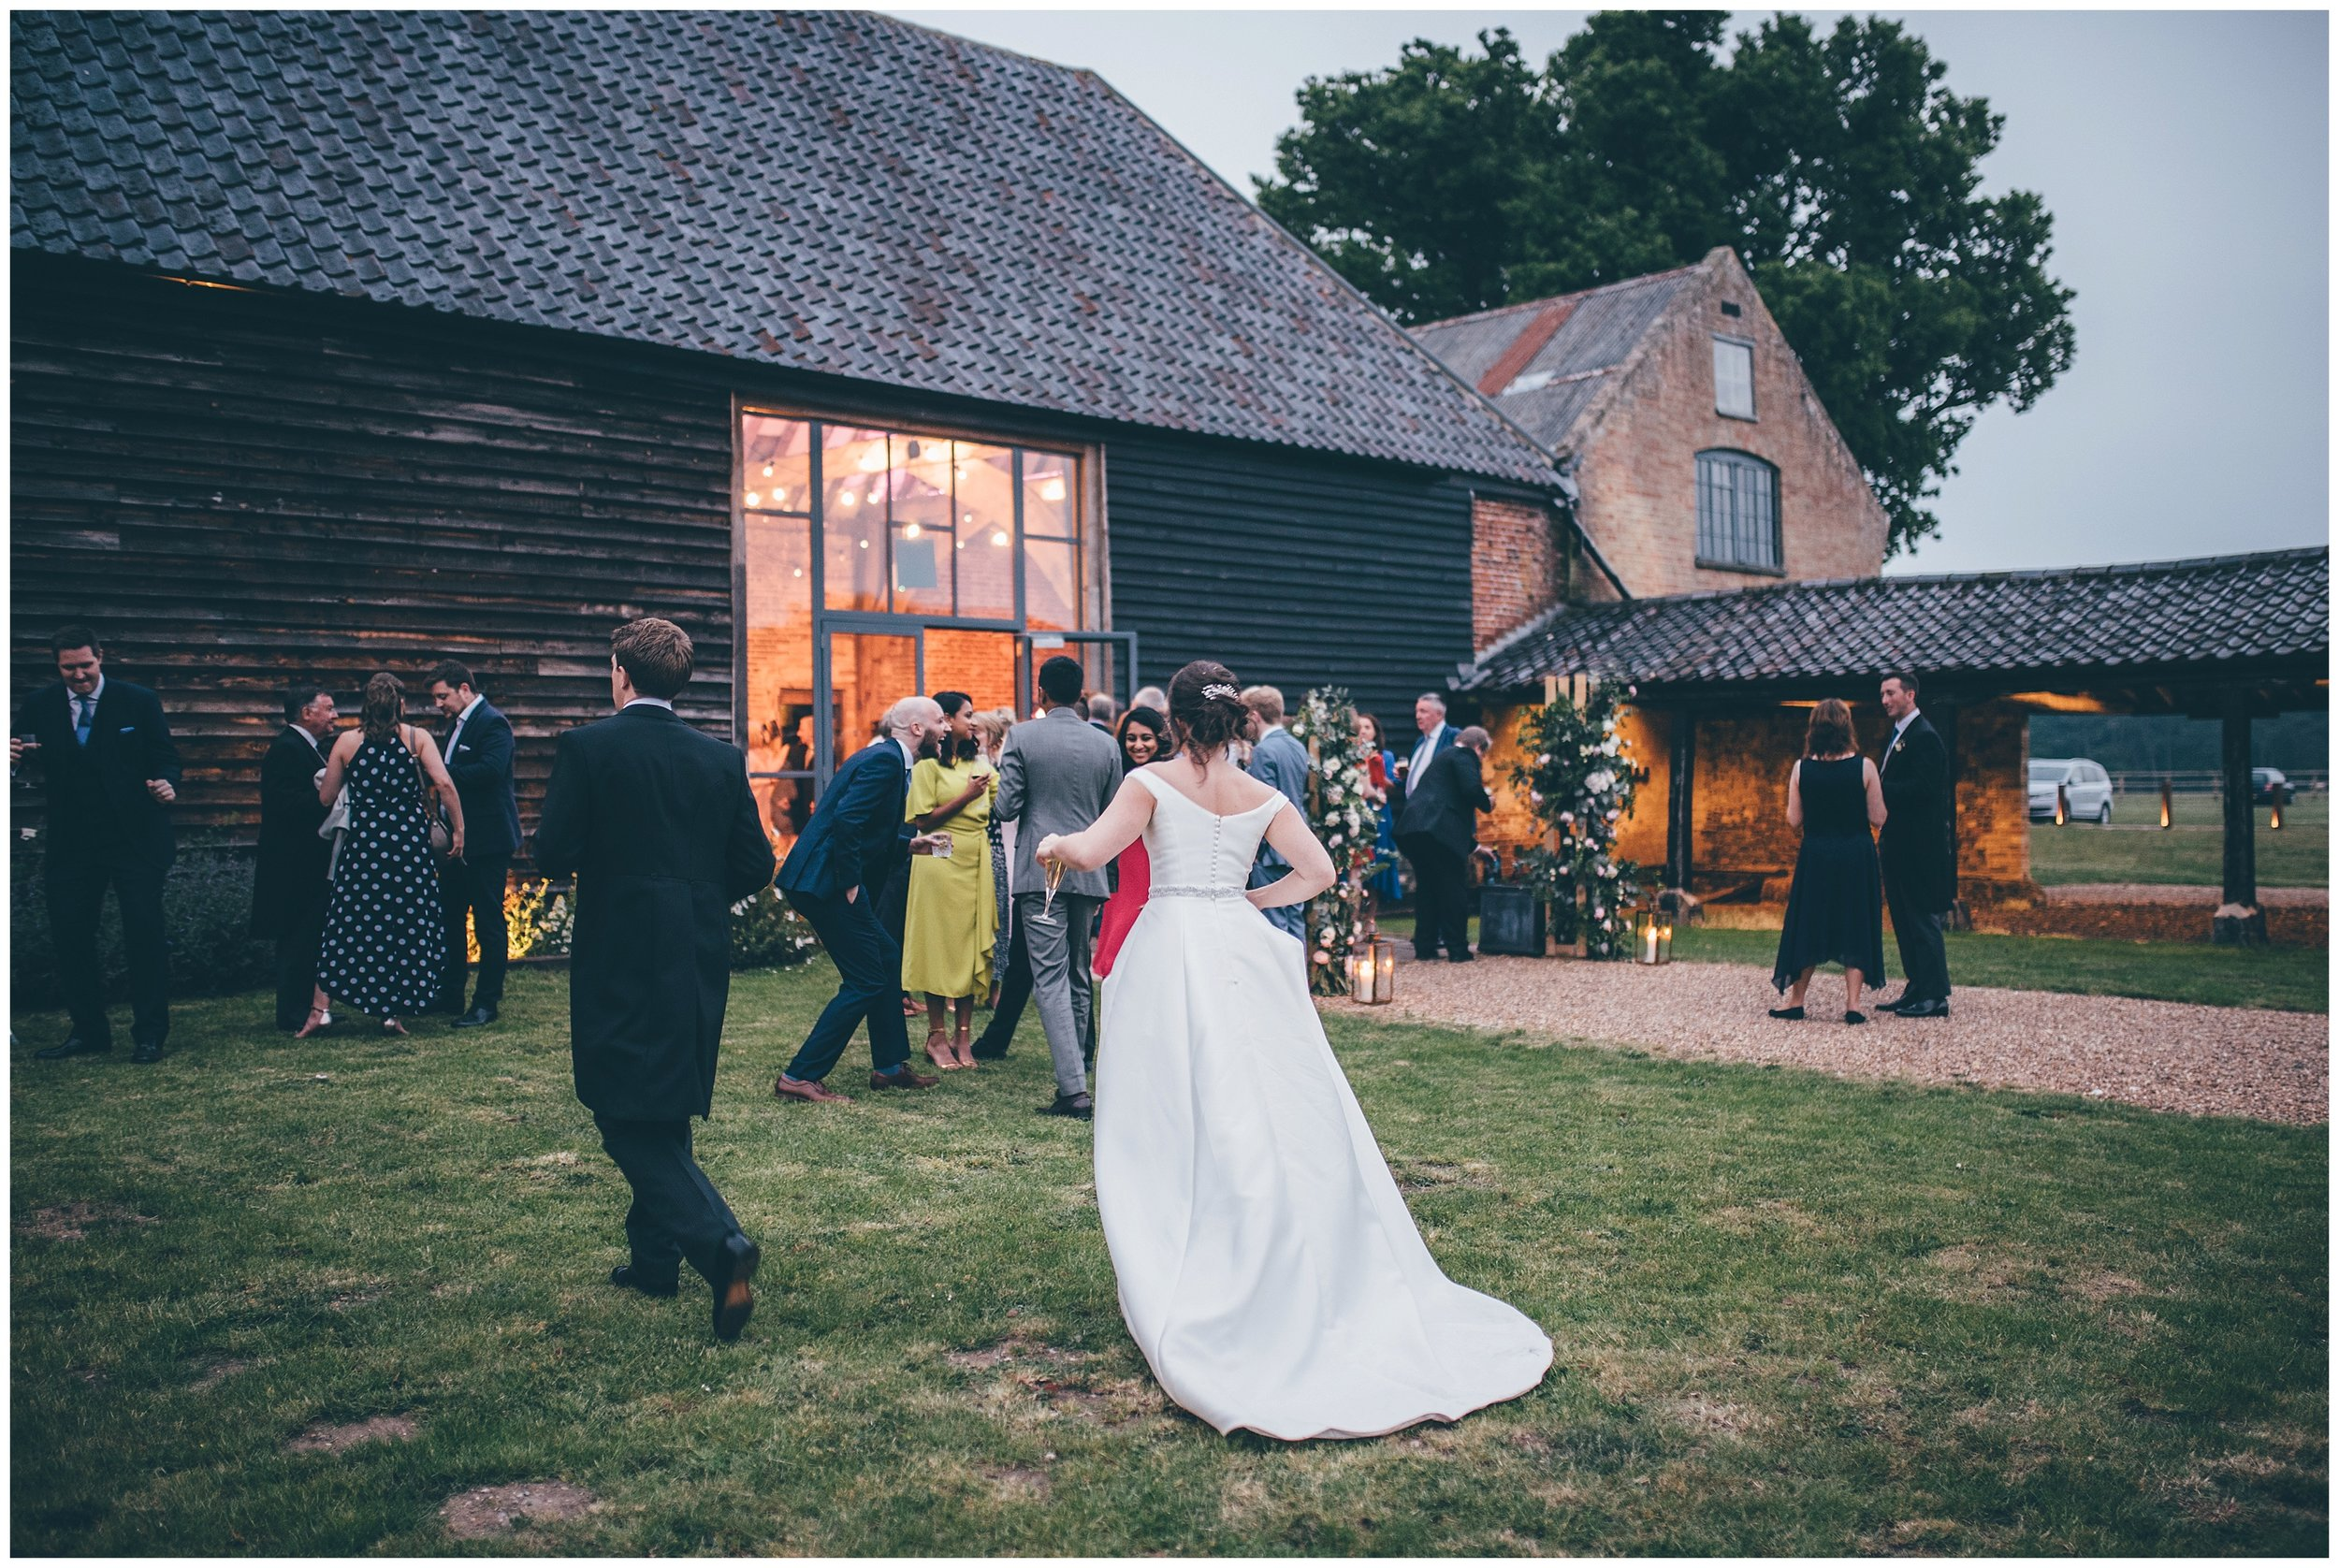 Bride and groom greet their evening guests at Henham Park wedding barns..